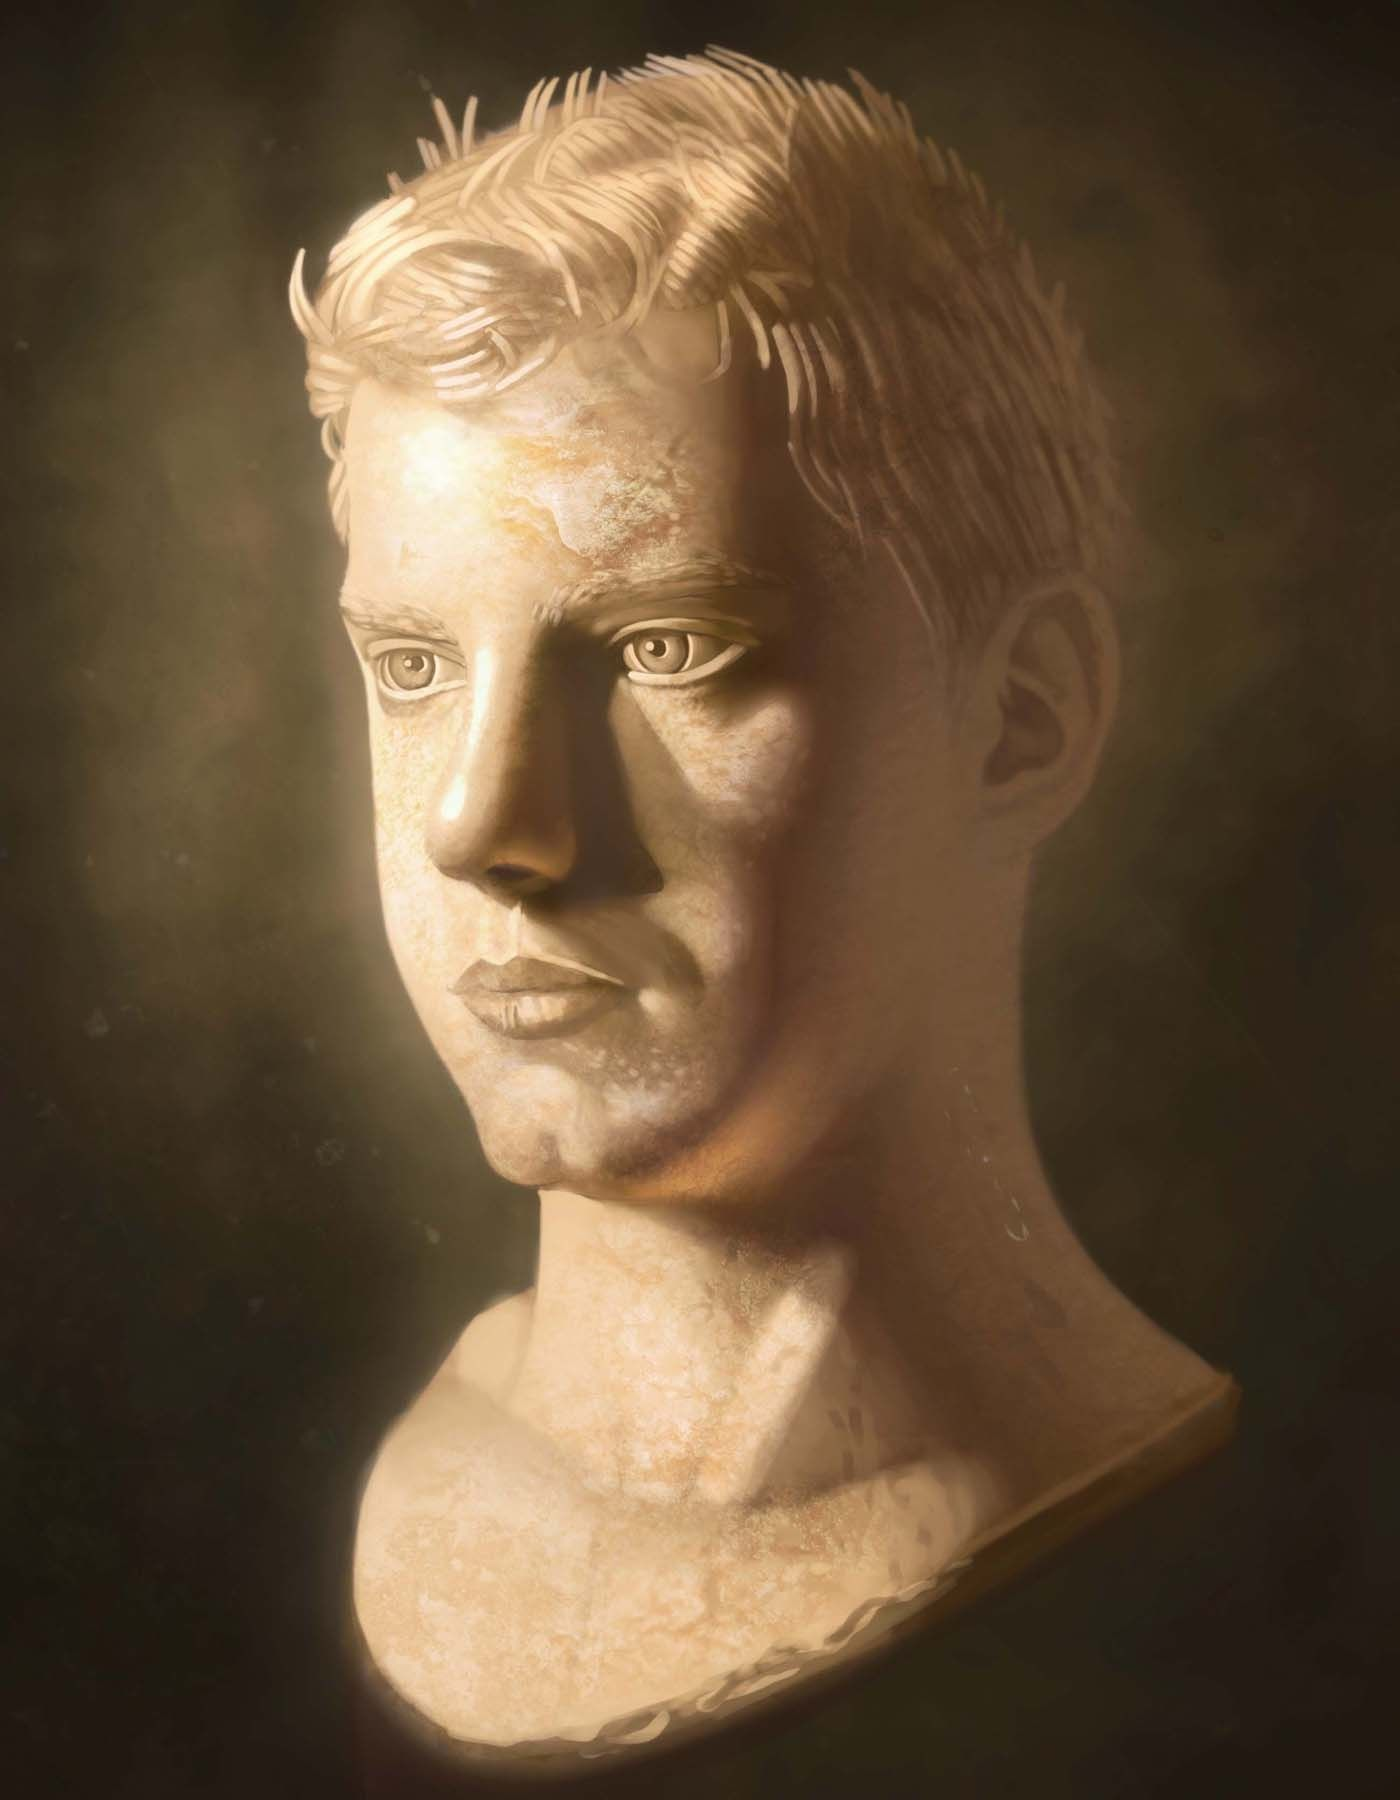 Photoshop tutorial turn a person into a marble statue in photoshop tutorial turn a person into a marble statue in photoshop digital arts baditri Gallery